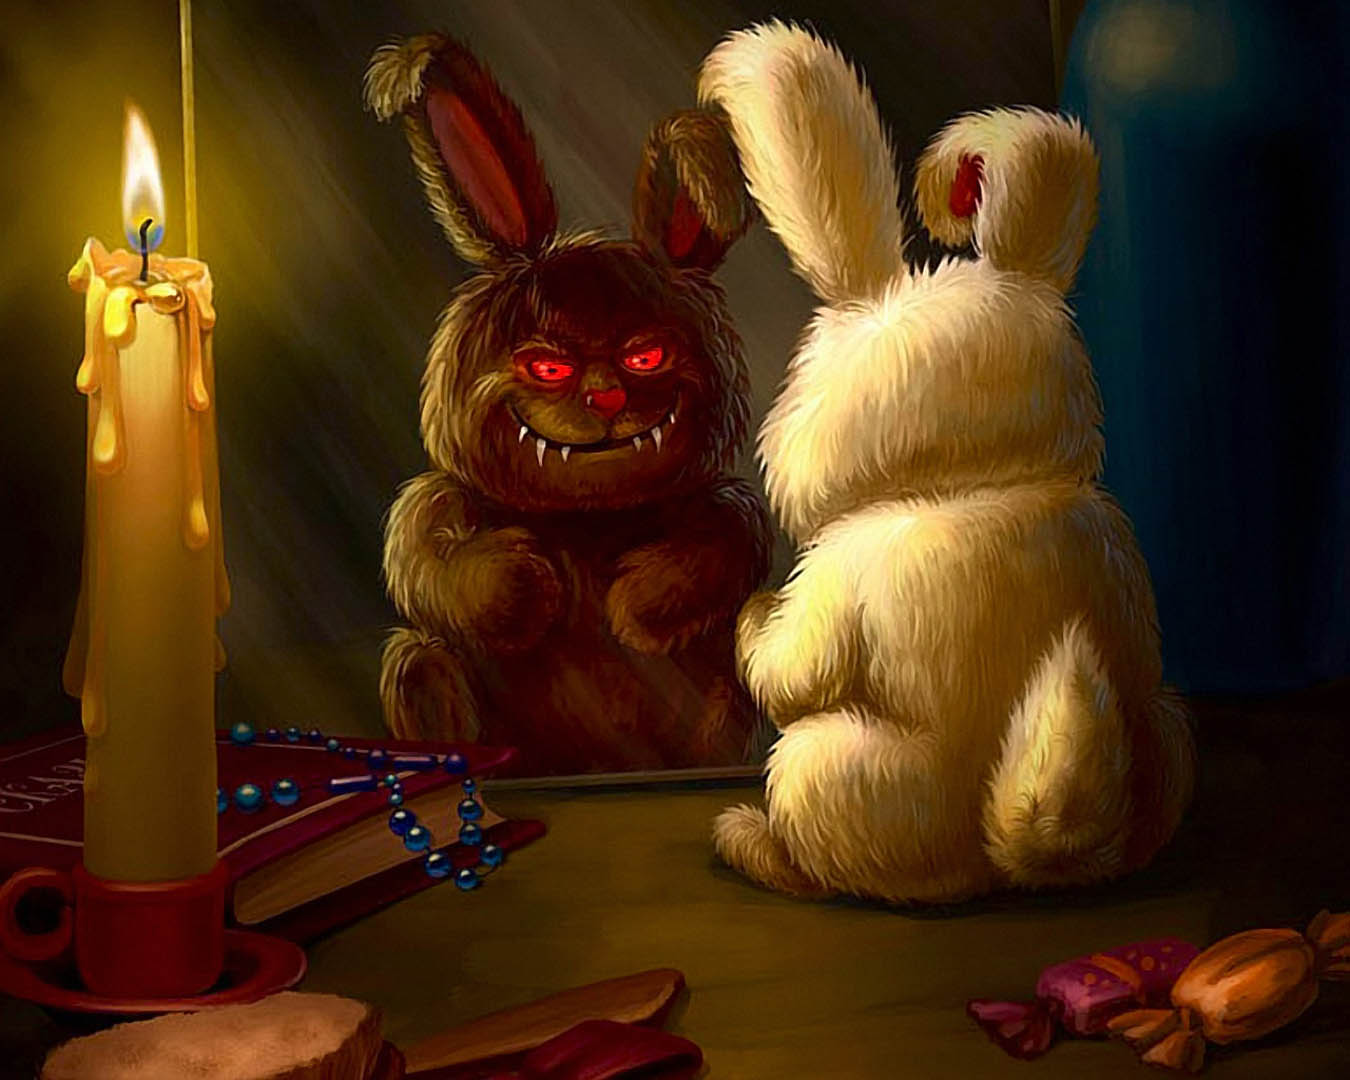 https://i0.wp.com/ayay.co.uk/backgrounds/fantasy/monsters/possessed-demon-rabbit.jpg